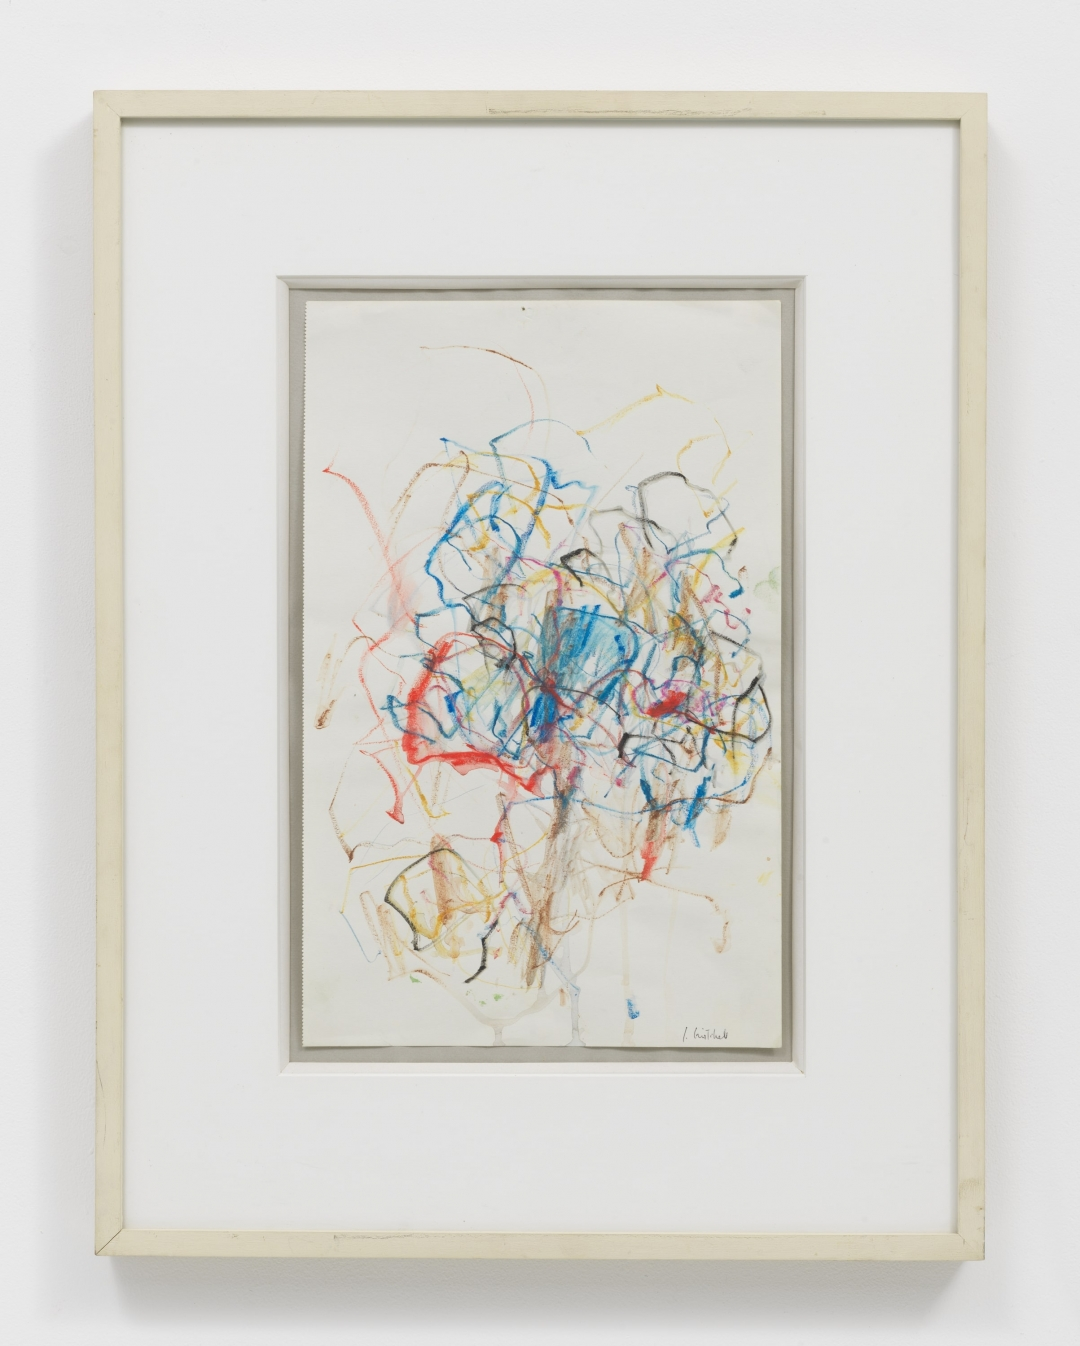 Joan Mitchell, <i>Tree</i>, c.1967, water-soluble wax crayon and wash on paper, 14 1/2 x 9 1/8 in. (36.83 x 23.18 cm)